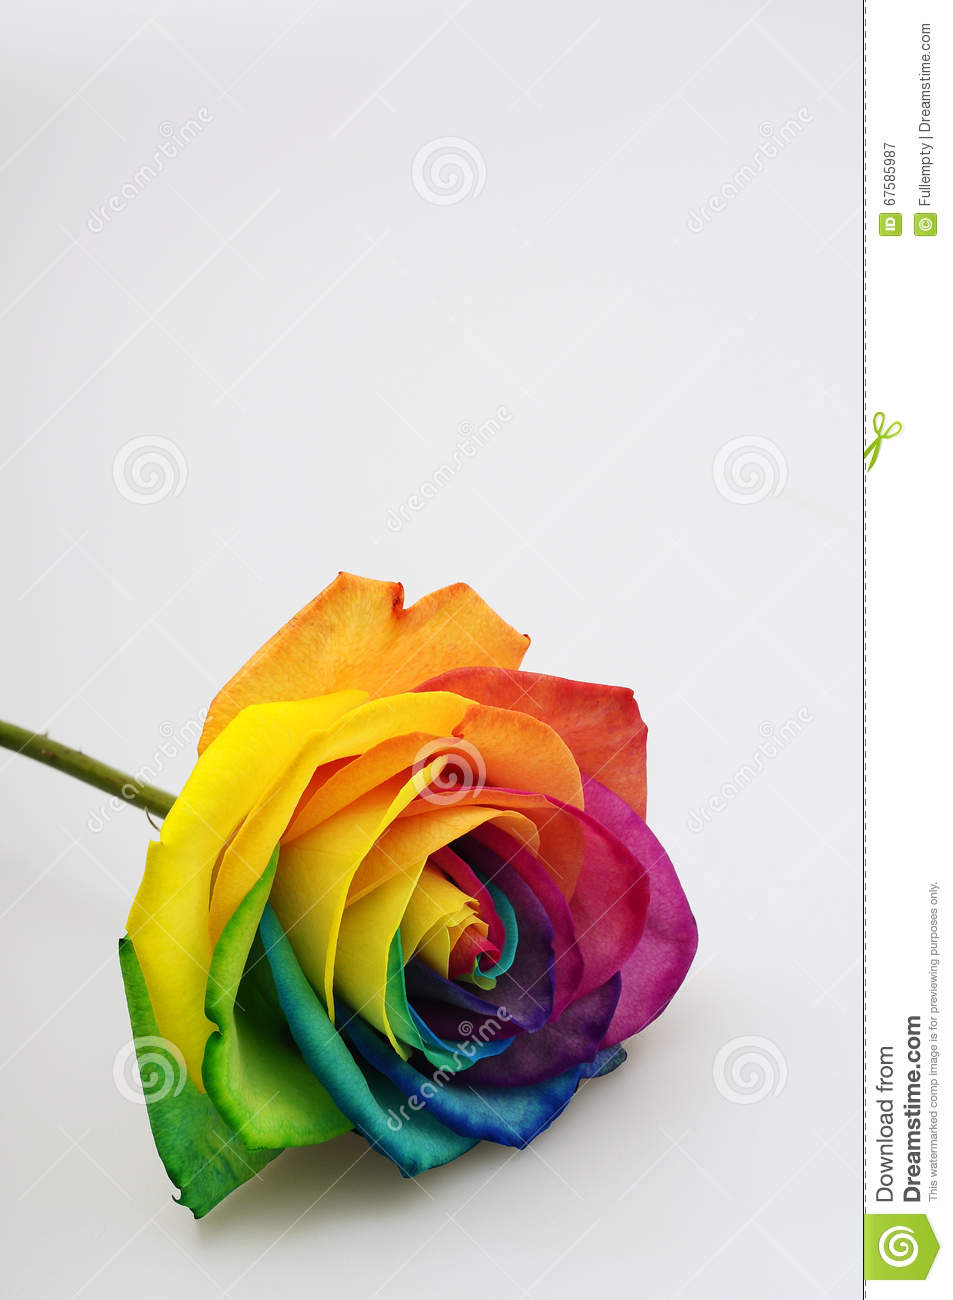 Close up of rainbow rose heart royalty free stock for Multi colored rose petals